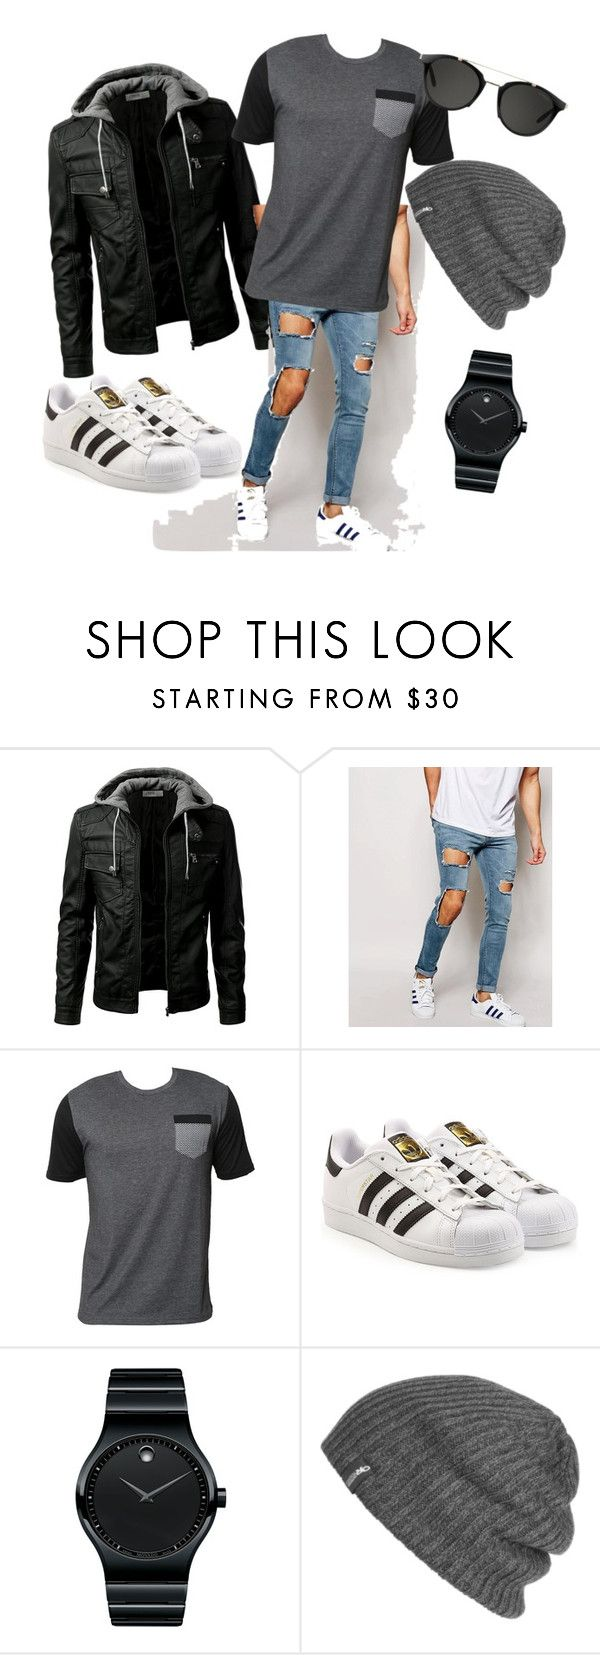 """Untitled #4"" by dominyka-januzyte ❤ liked on Polyvore featuring ASOS, Billabong, adidas Originals, Movado, Outdoor Research, Carrera, men's fashion and menswear"